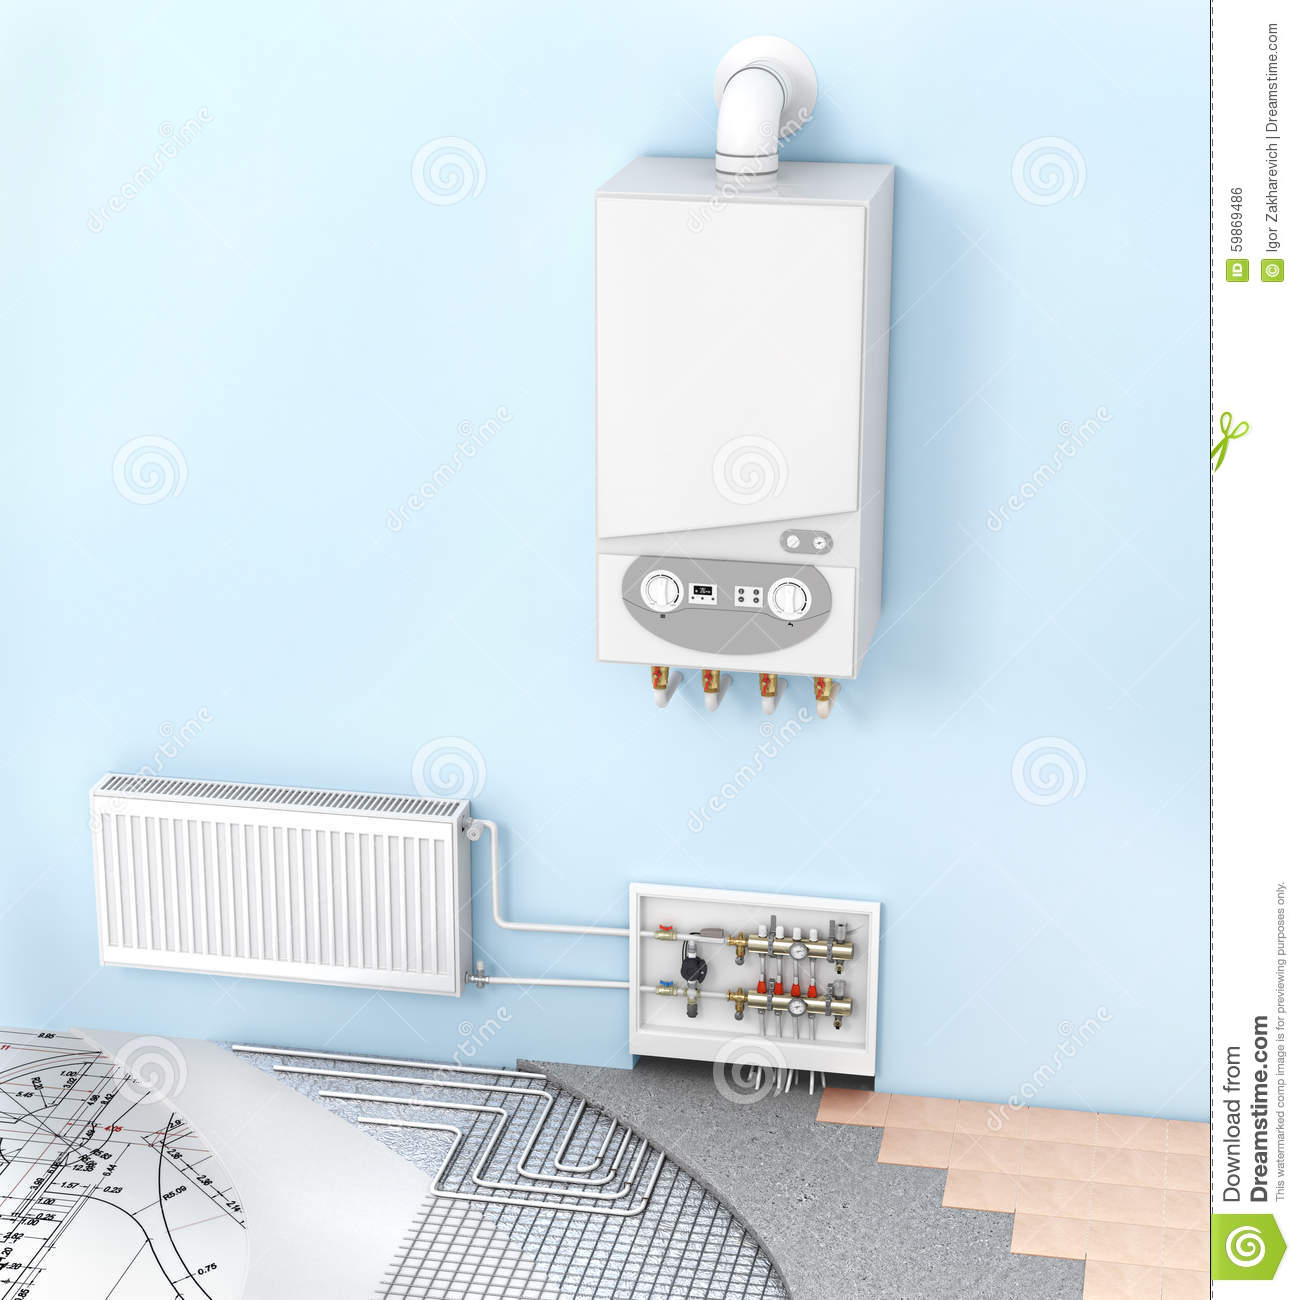 Heating Material Stock Photography Cartoondealer Com